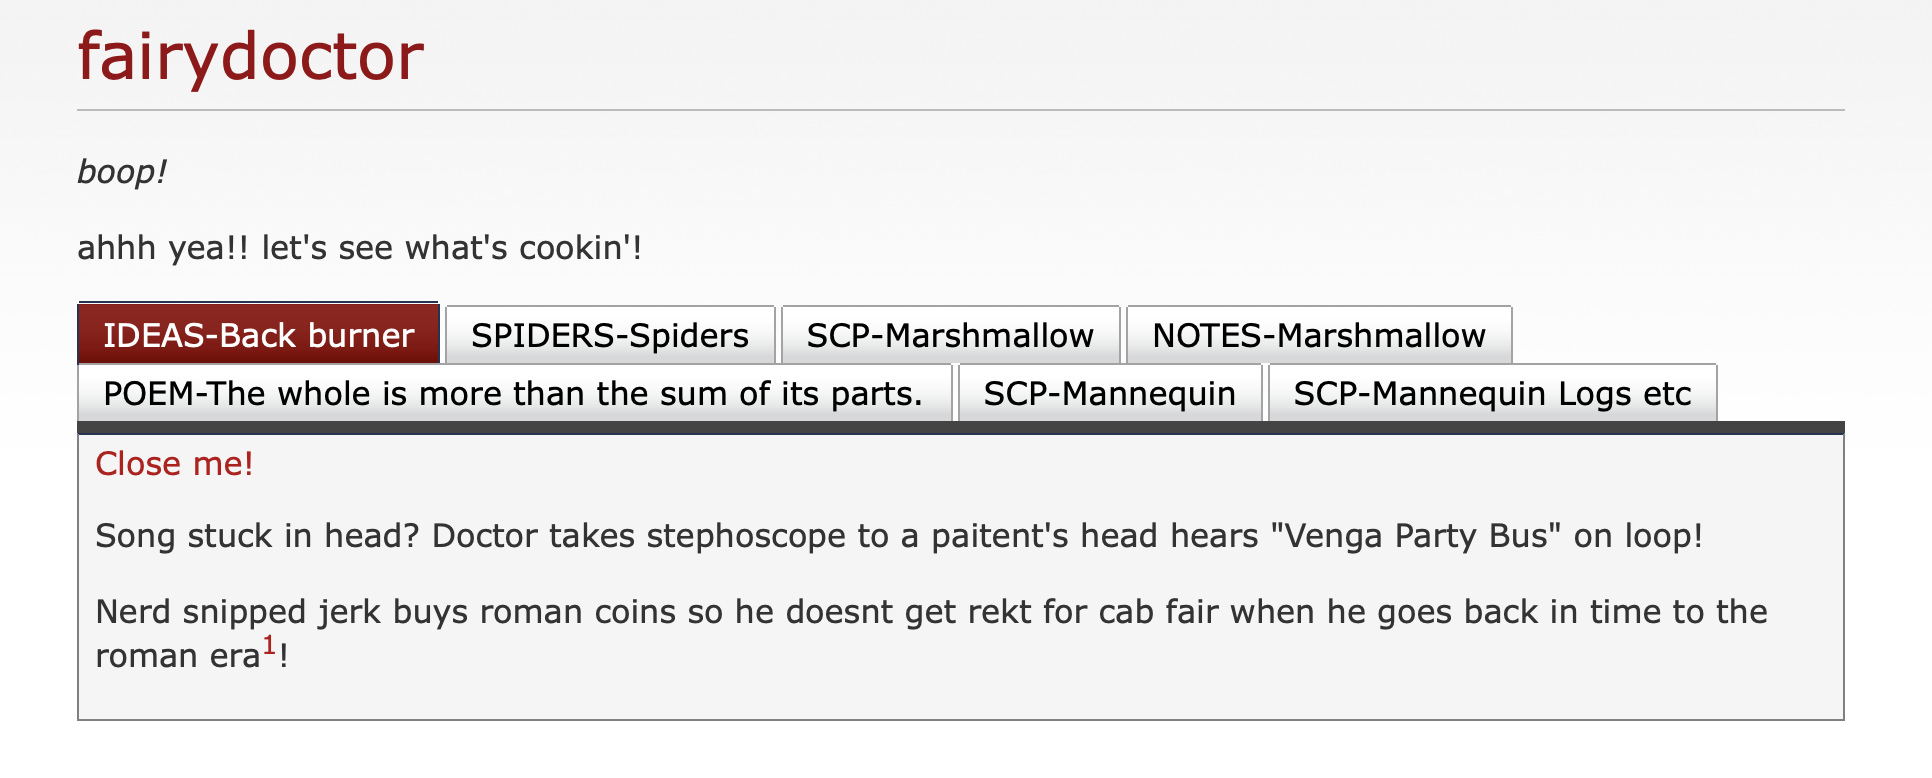 """text reads:  Song stuck in head? Doctor takes stephoscope to a paitent's head hears """"Venga Party Bus"""" on loop!  Nerd snipped jerk buys roman coins so he doesnt get rekt for cab fair when he goes back in time to the roman era!"""